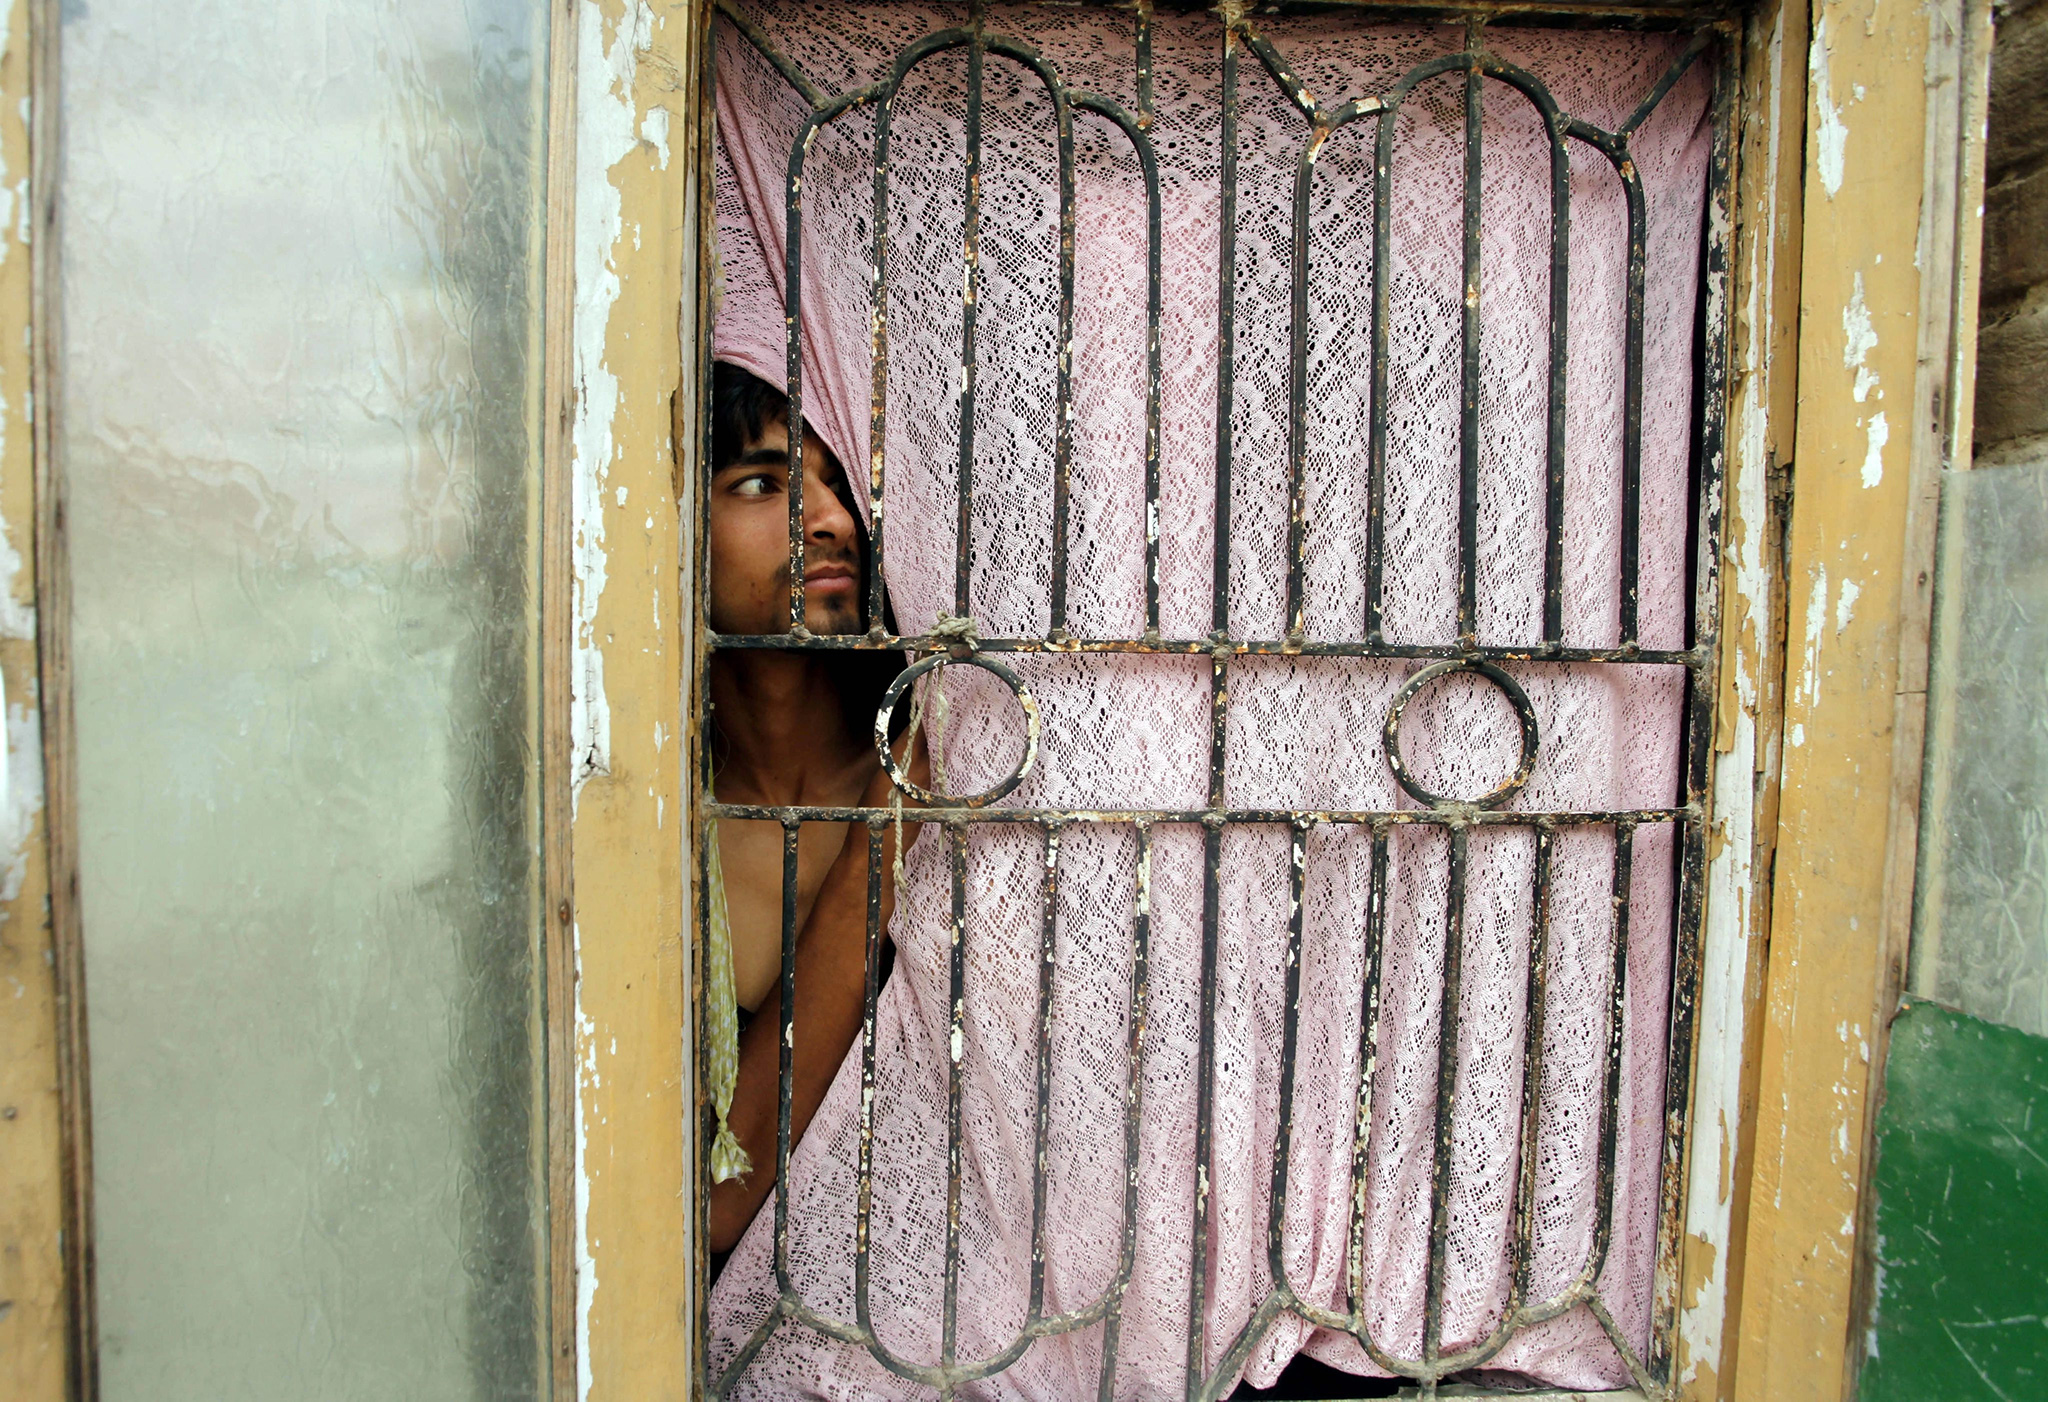 A Kashmiri boy peeps from the door of his home during a gunfight in Nowhatta area of downtown of Srinagar, the summer capital of Indian Kashmir